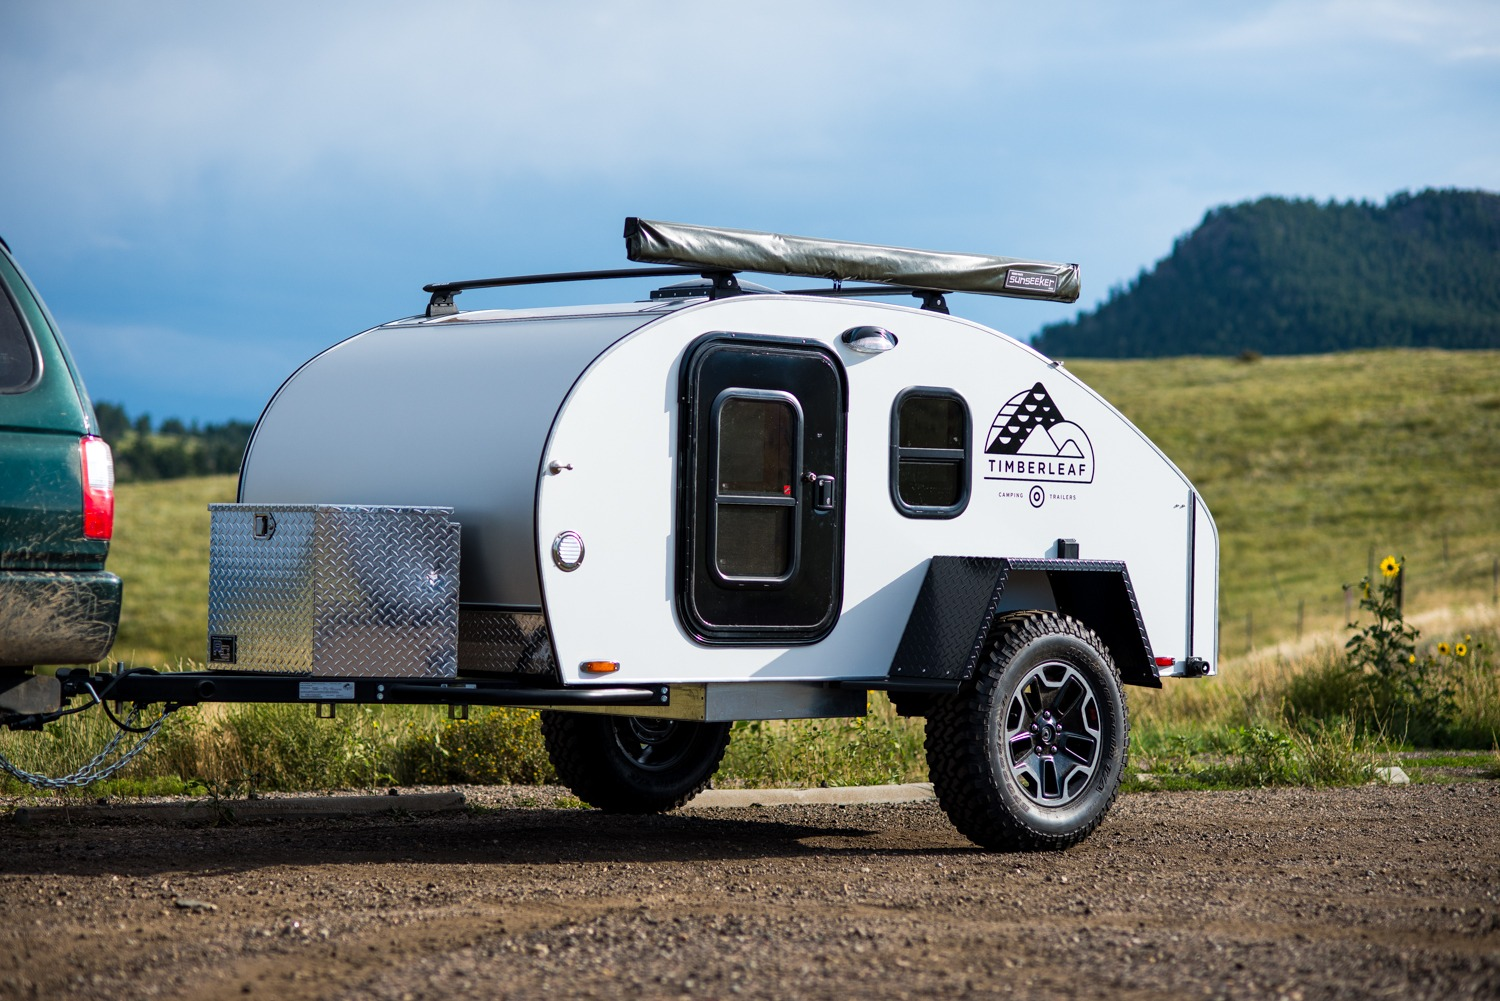 Outdoor Anhänger The Ultimate Off Road Trailer Buyer S Guide 2019 Tap